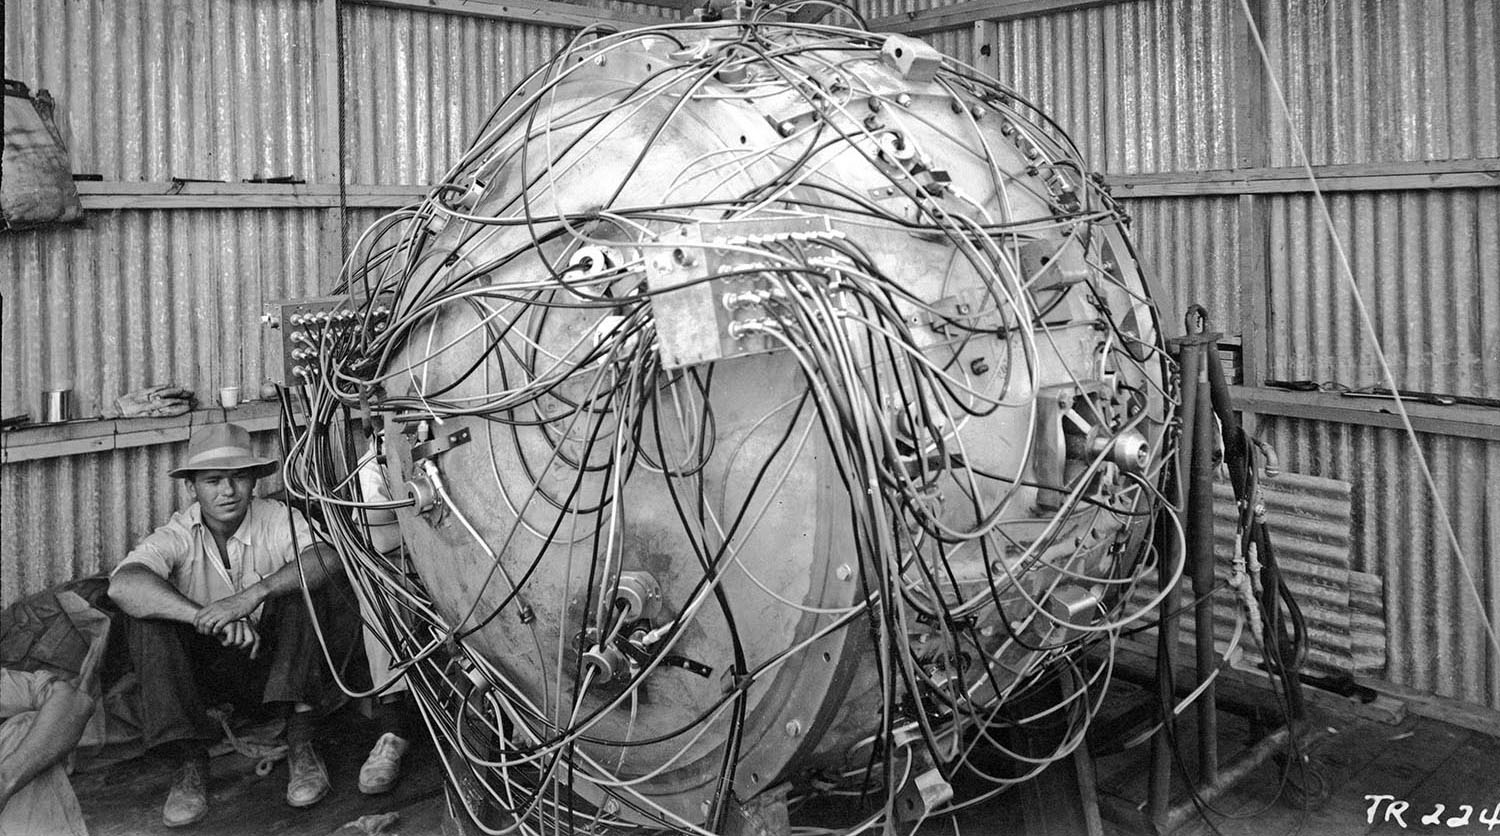 The Gadget in the test tower. Photo courtesy of Los Alamos National Laboratory.